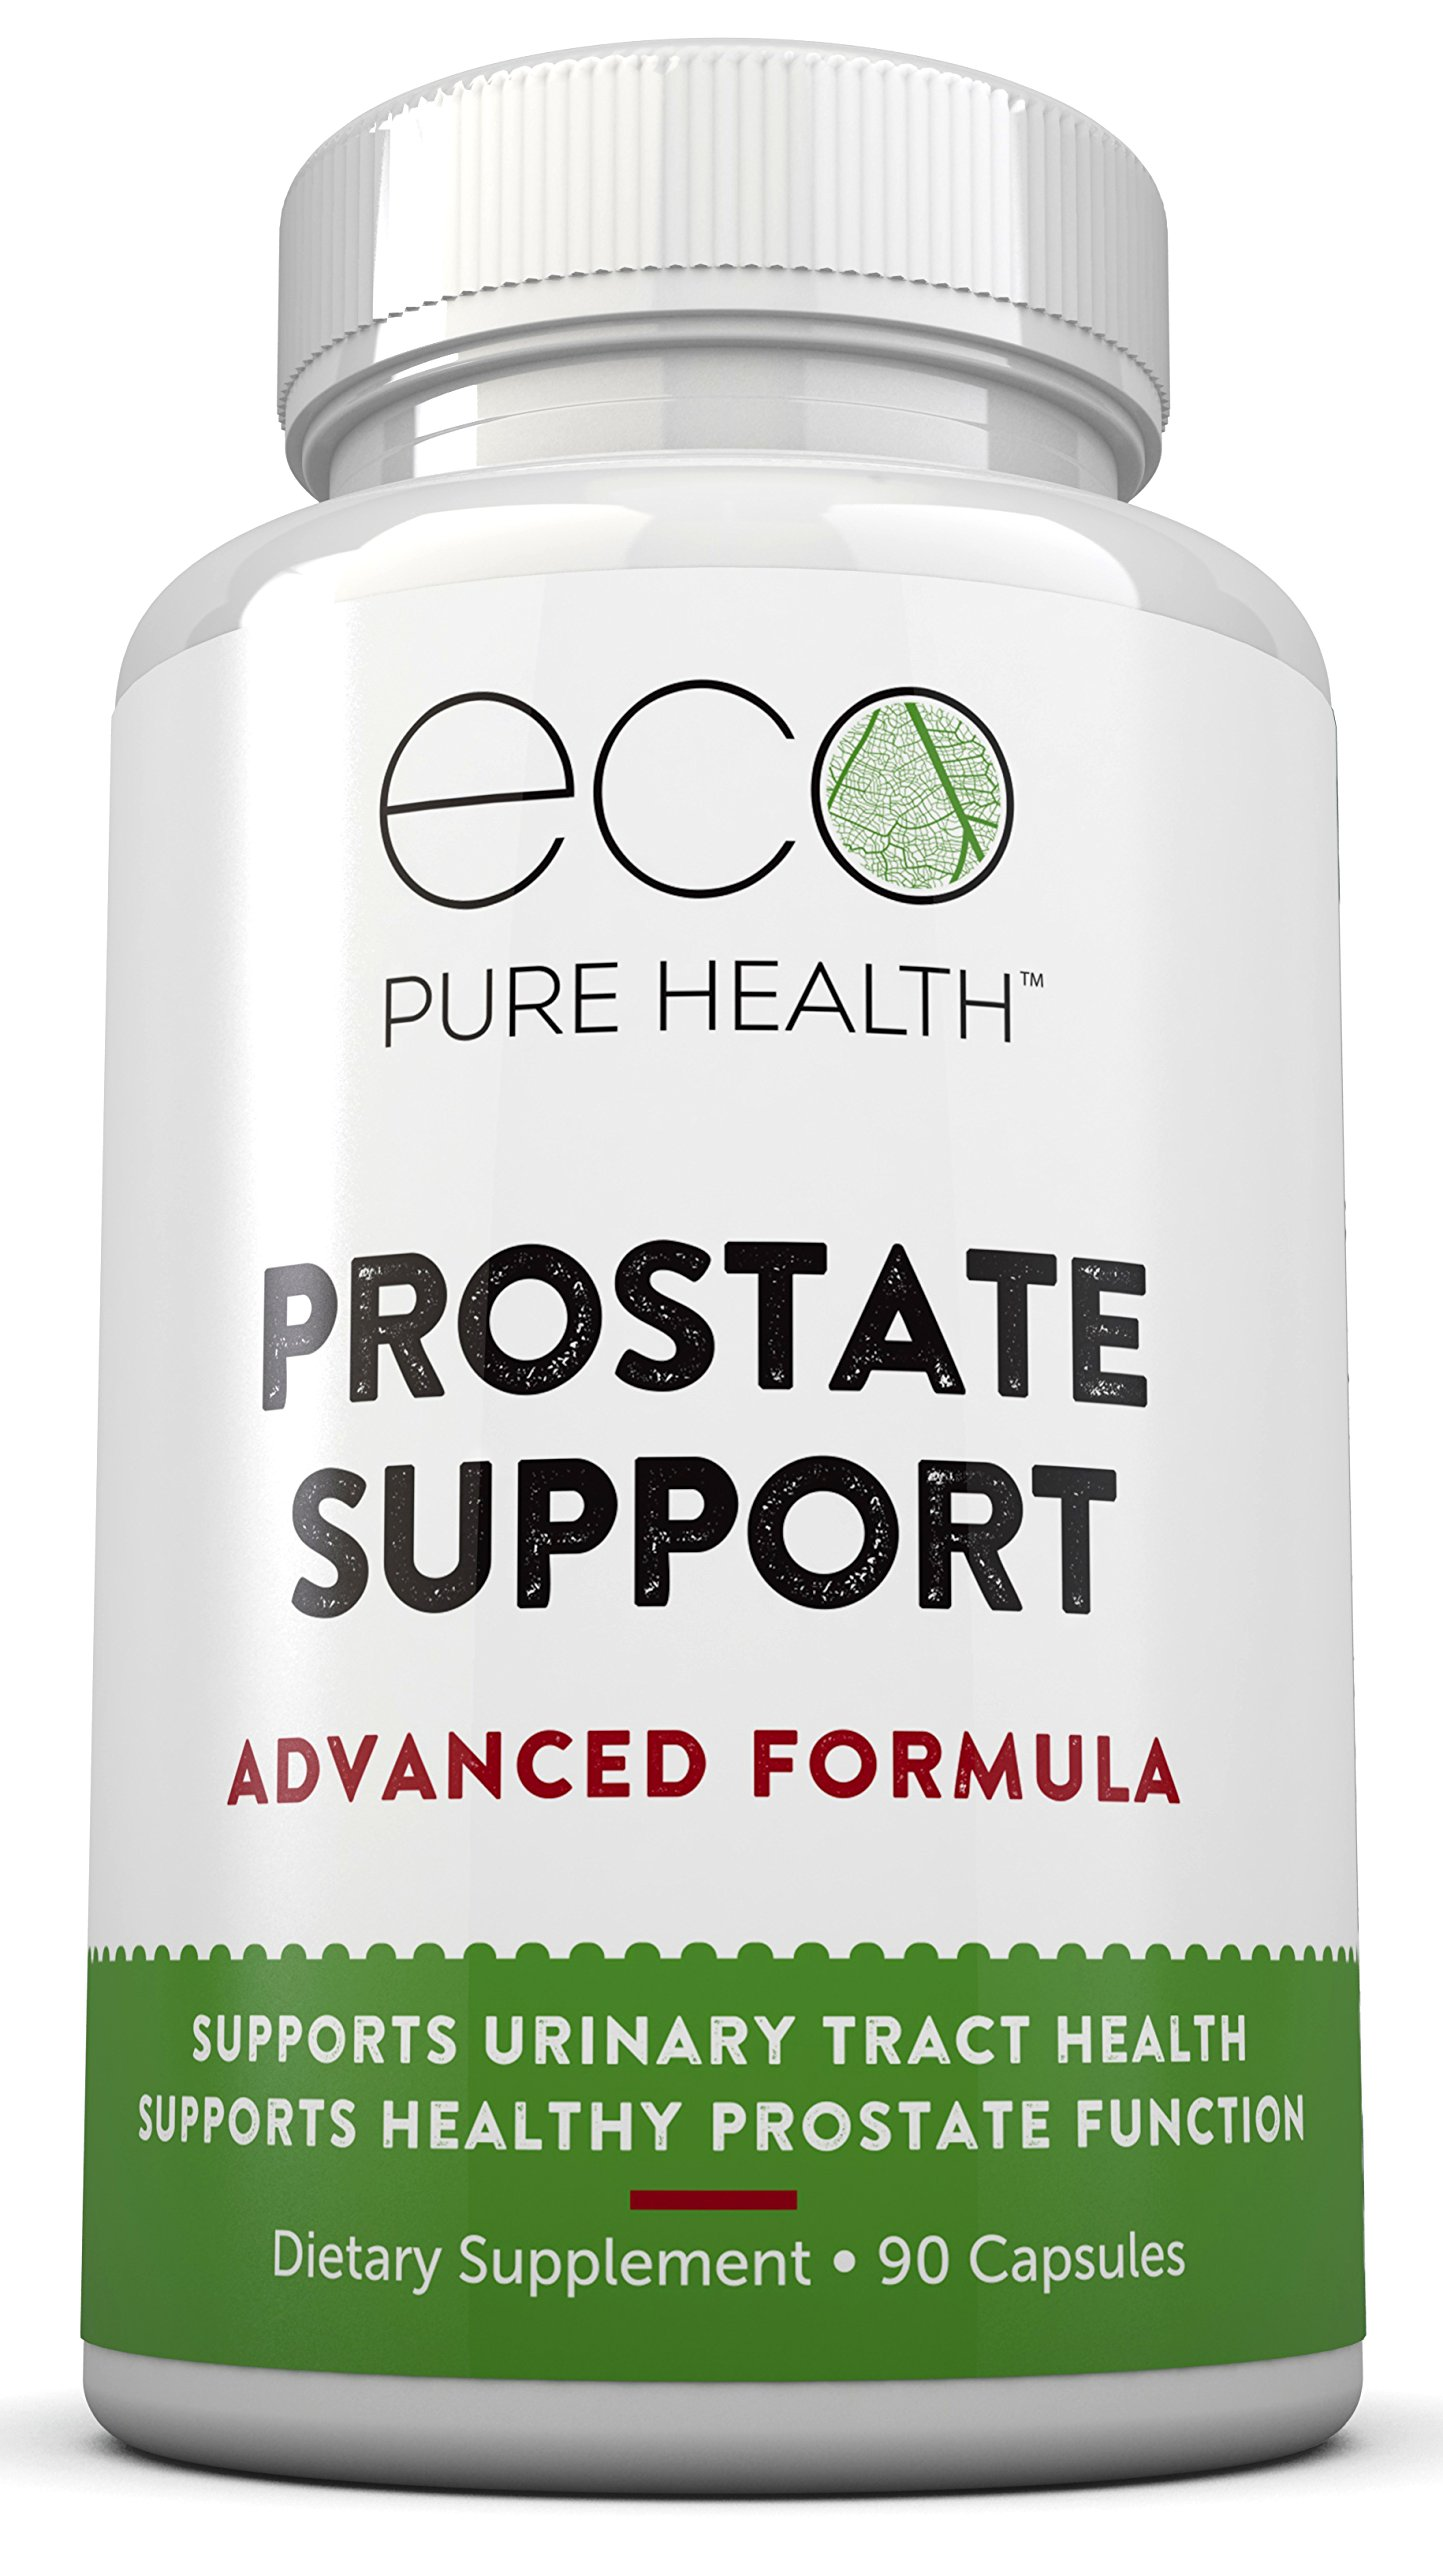 Prostate Support Advanced Formula, Natural Supplement to Support Urinary Tract Health, Healthy Prostate Function - 90 Capsules by Eco Pure Health